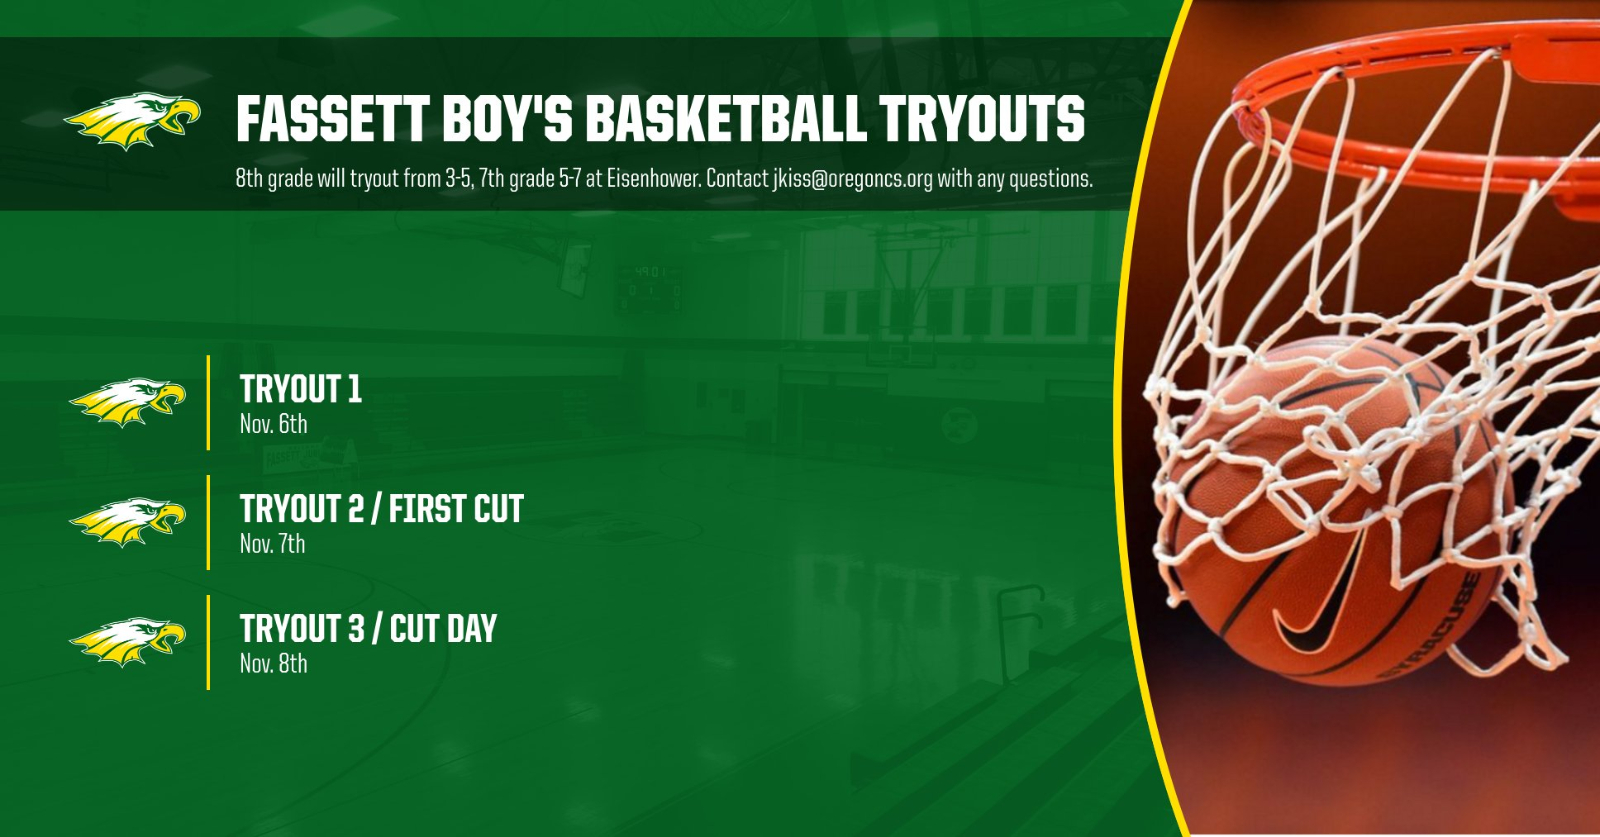 Fassett Boy's Basketball Tryout Dates Announced